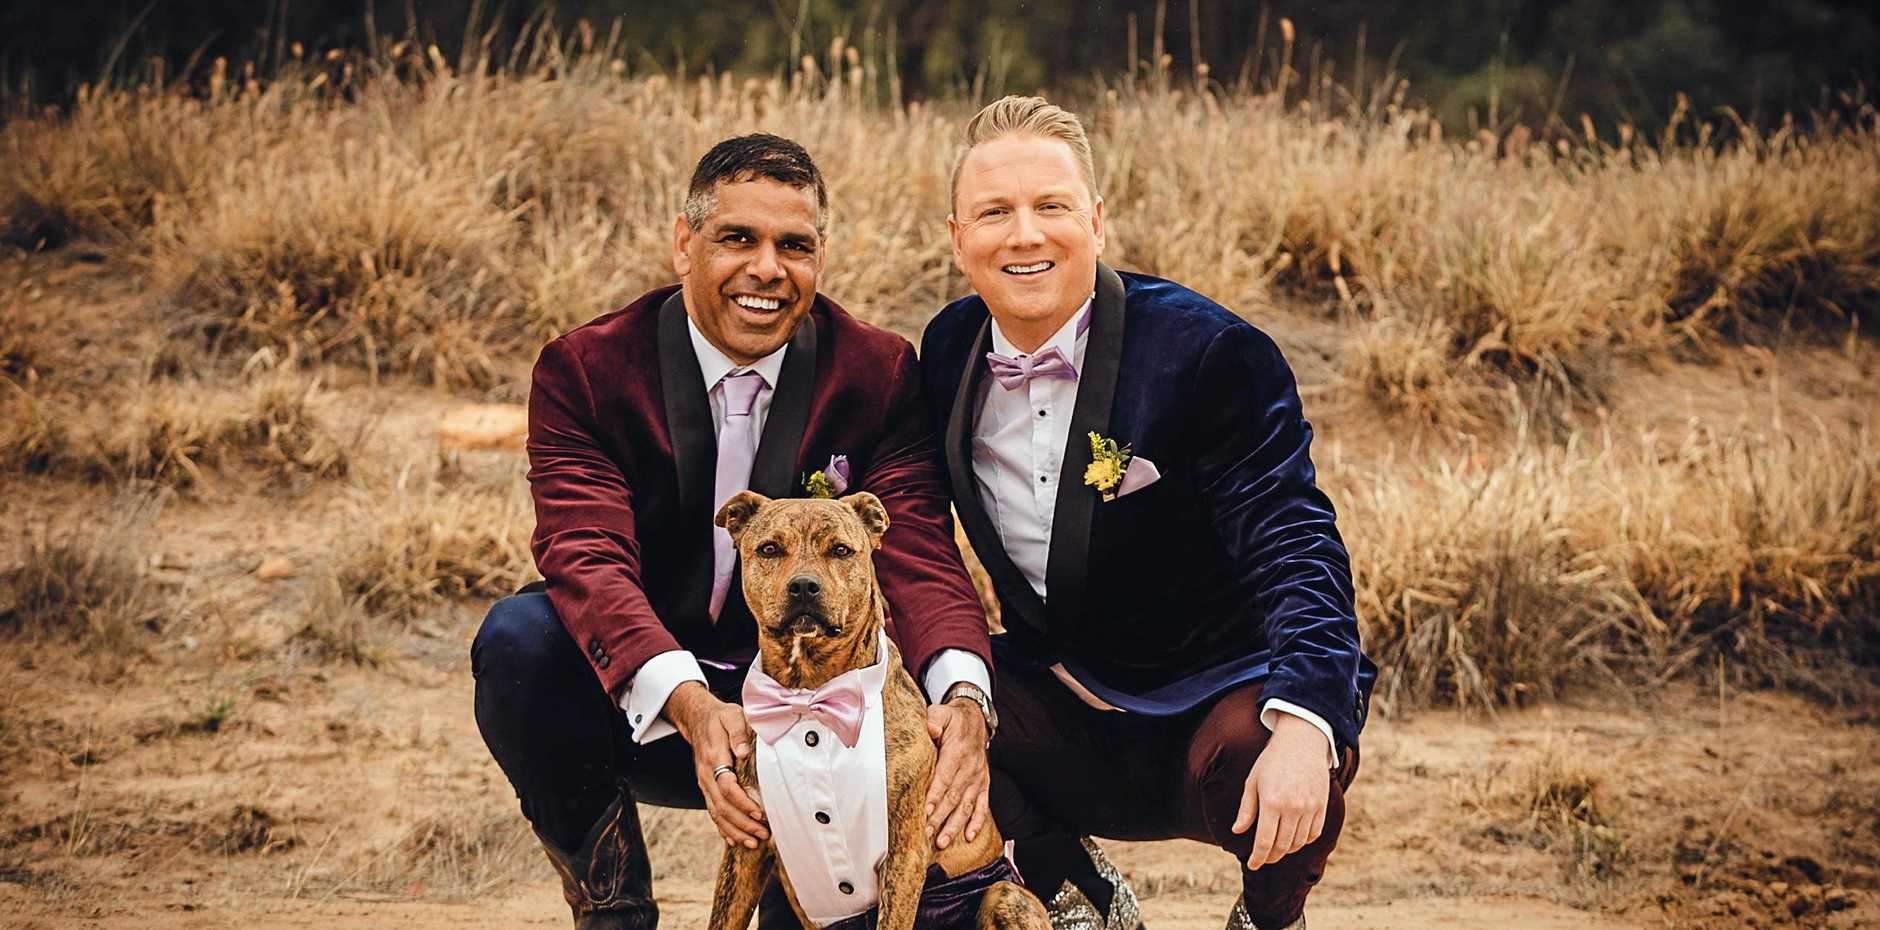 LOVE IS LOVE: Malcome Mitchell and husband Ian McDonald with their dog, Kronk, at their wedding in Mitchell on Saturday.